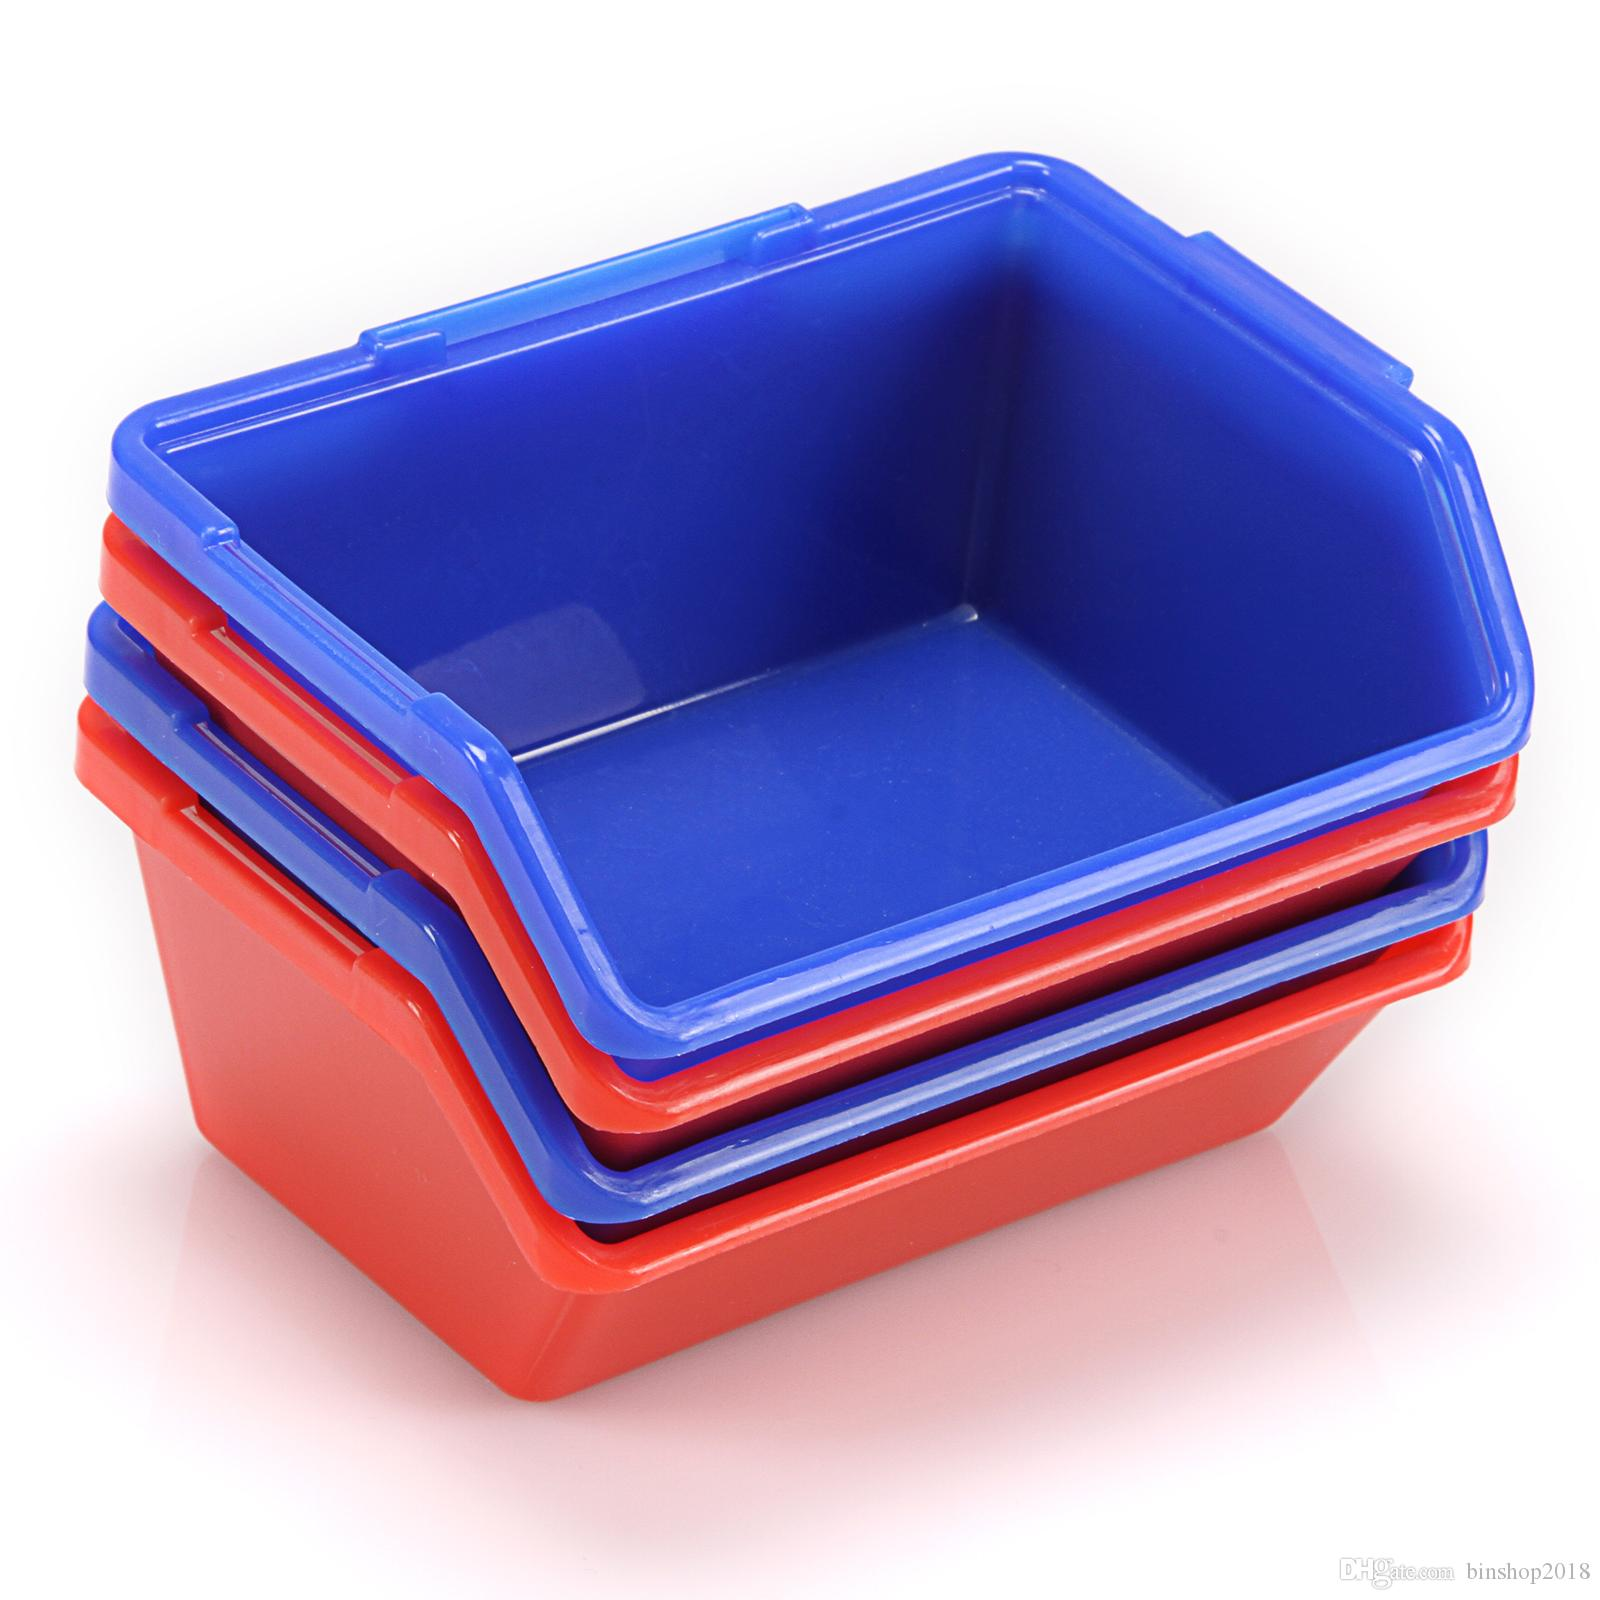 Wholesale Brand New Lot of 20pcs Red or Blue Open Fronted Storage Bins Plastic Parts Picking Workshop Box Small